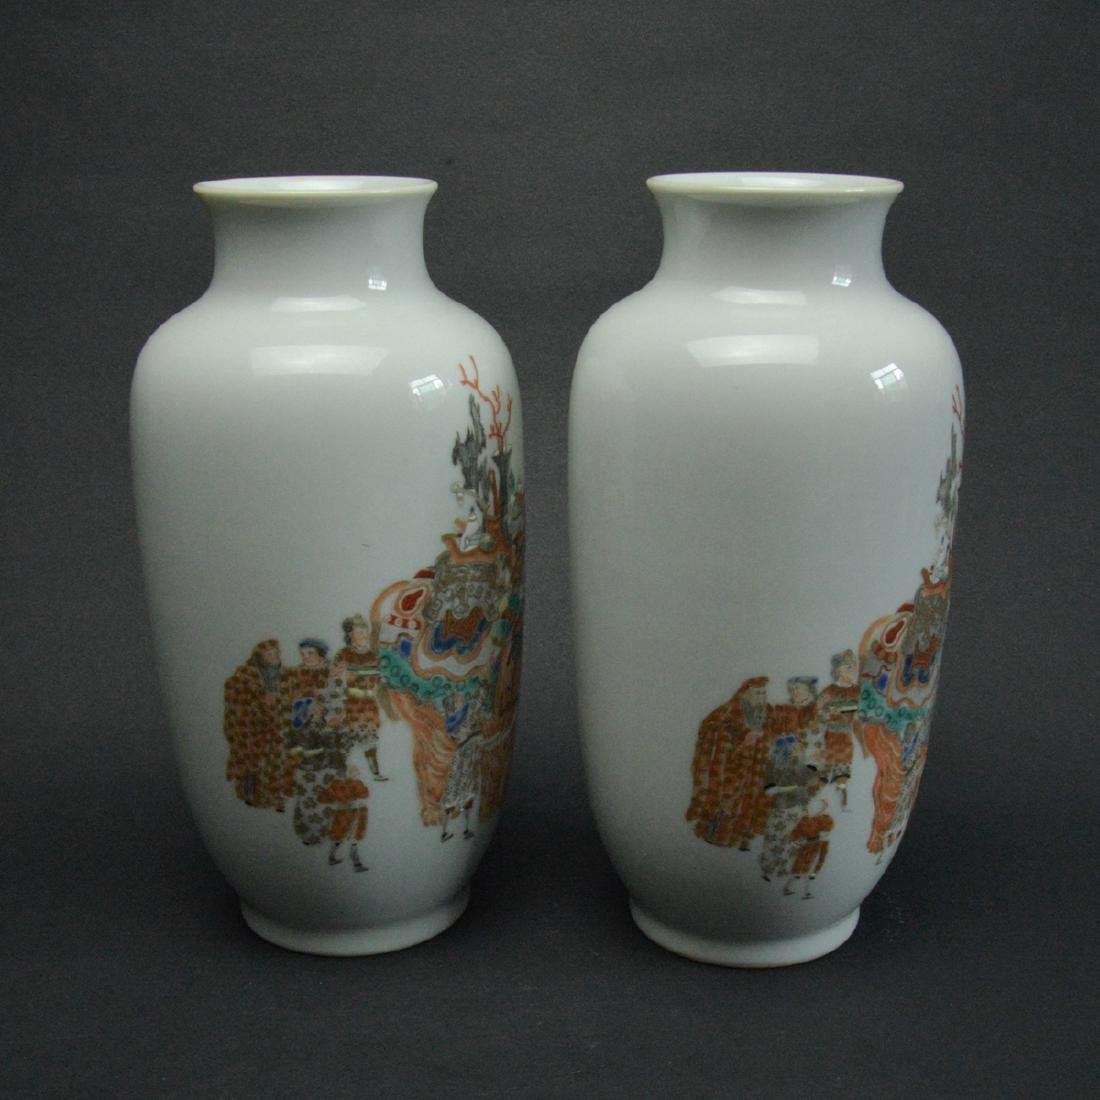 CHINESE FAMILLE ROSE PORCELAIN VASES, PAIR - 3